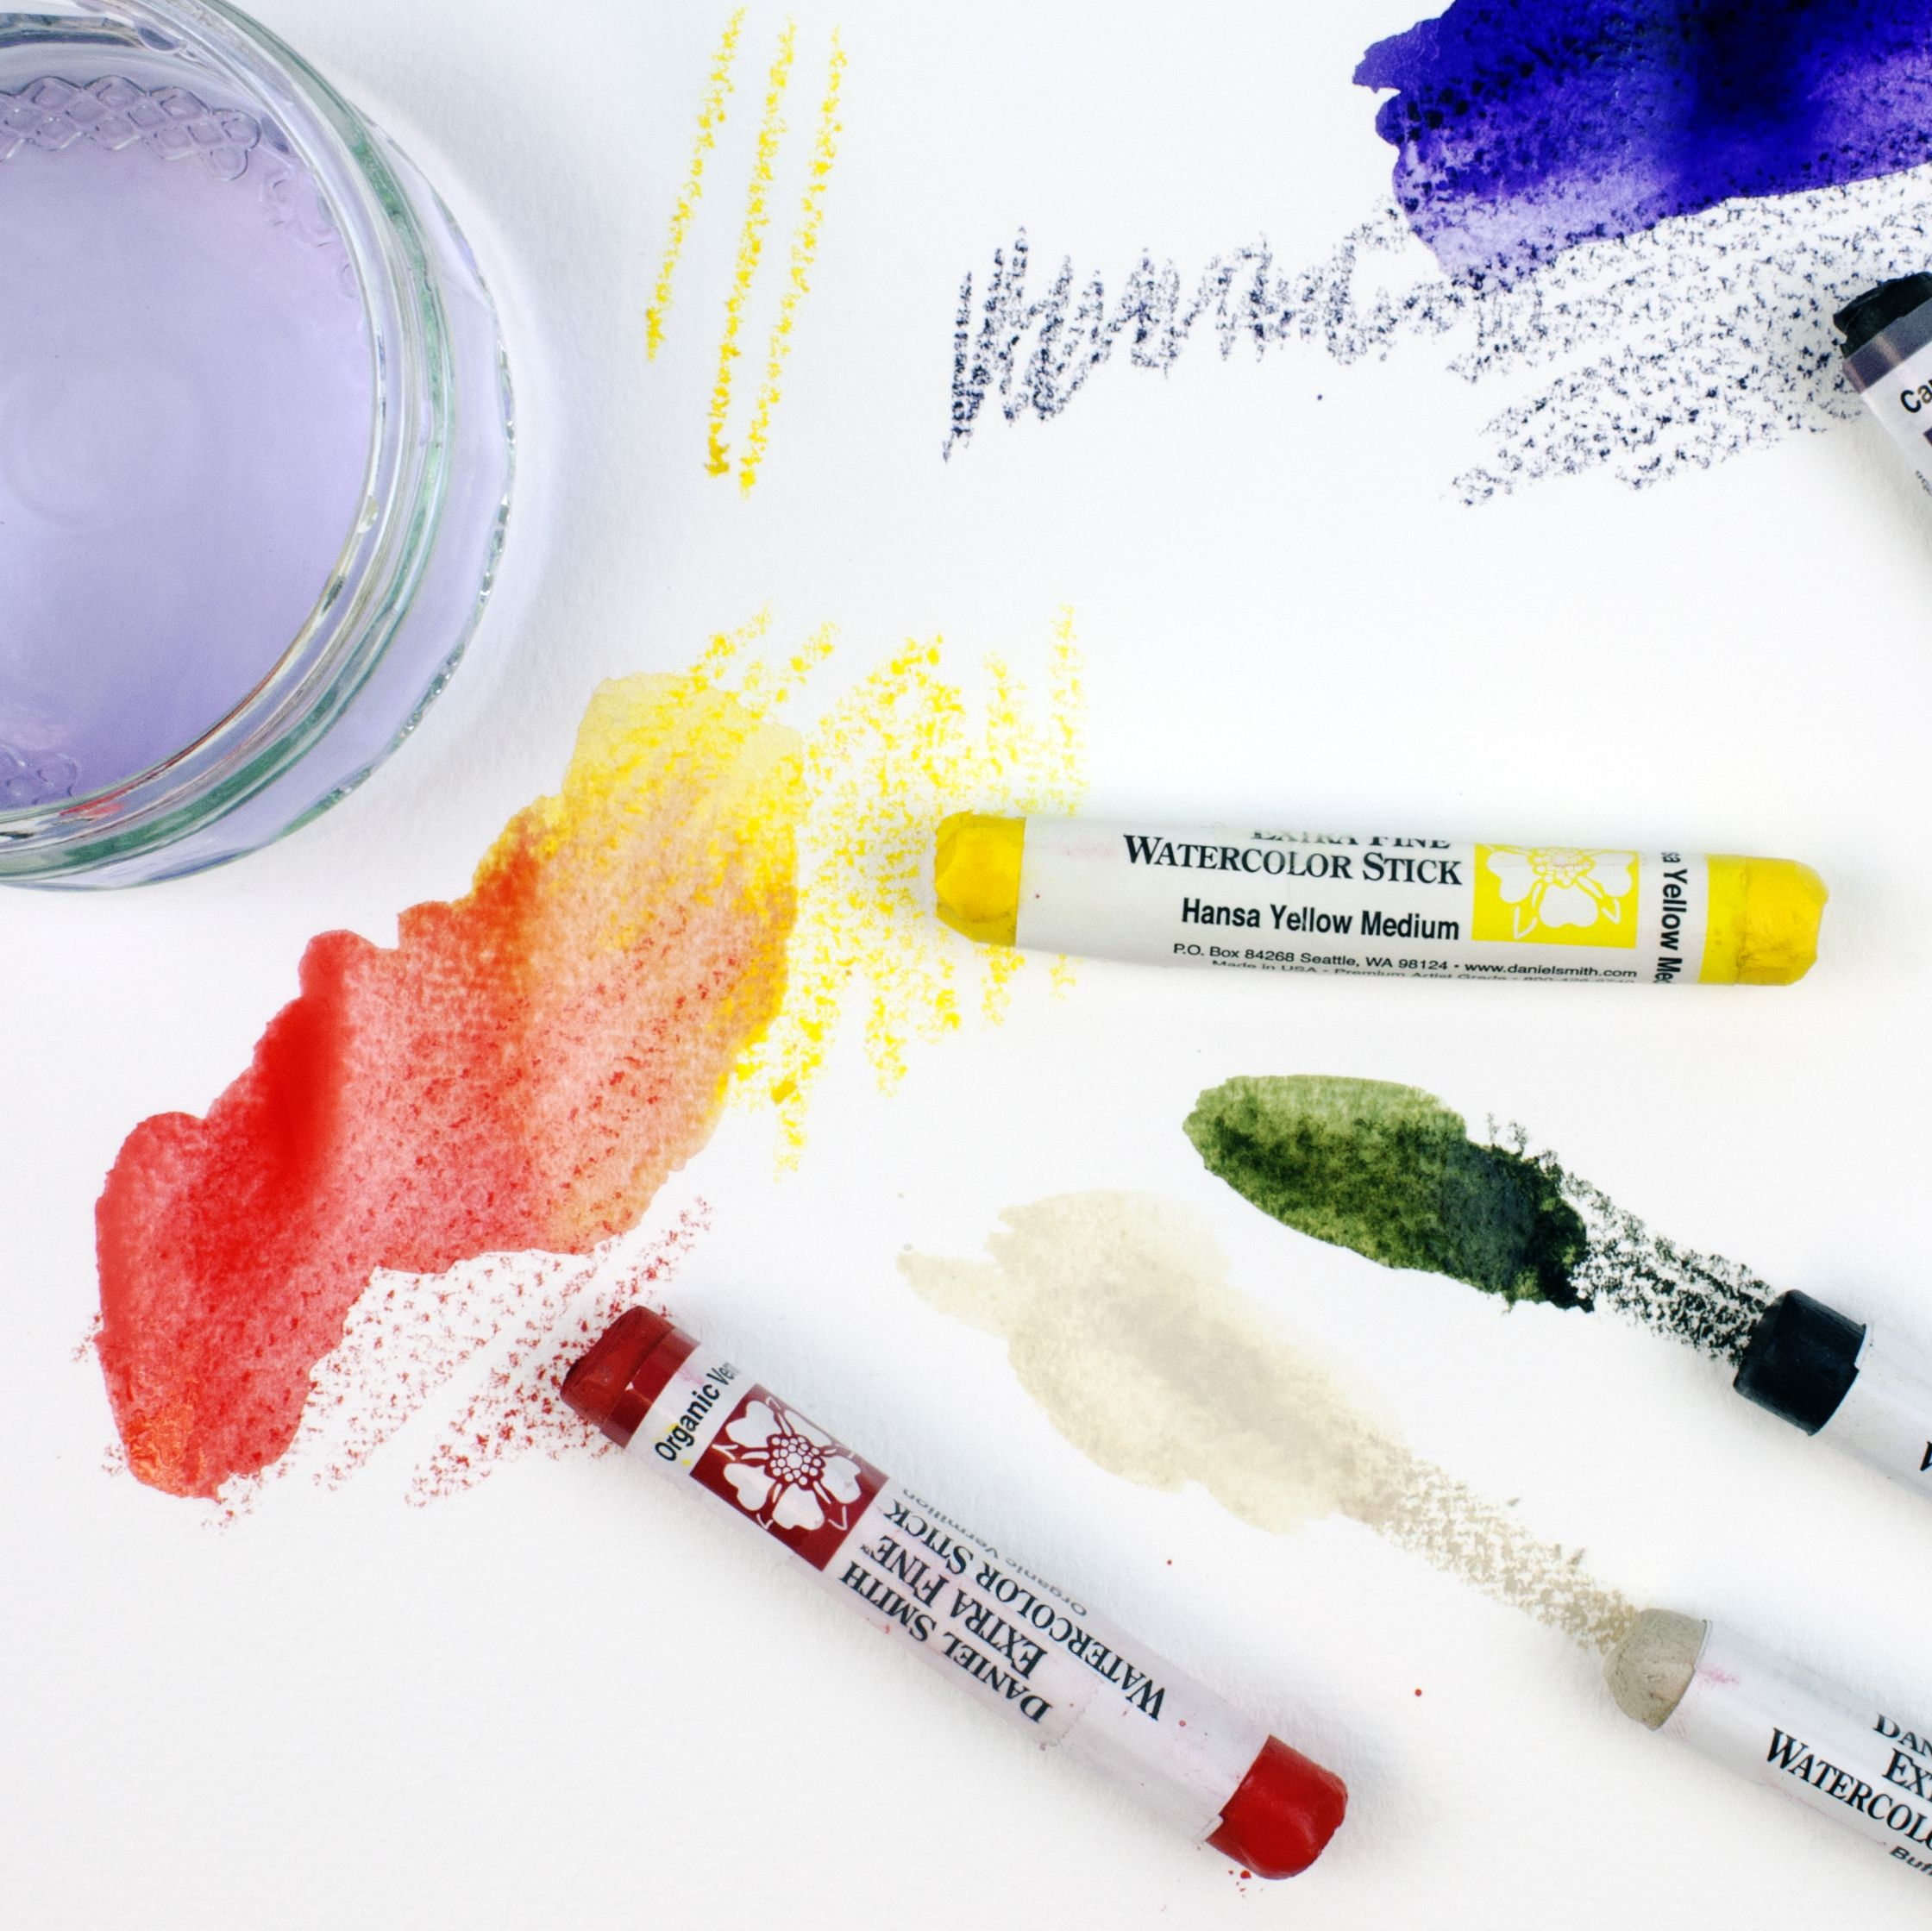 Daniel Smith Watercolour Sticks Watercolor Pans Watercolor